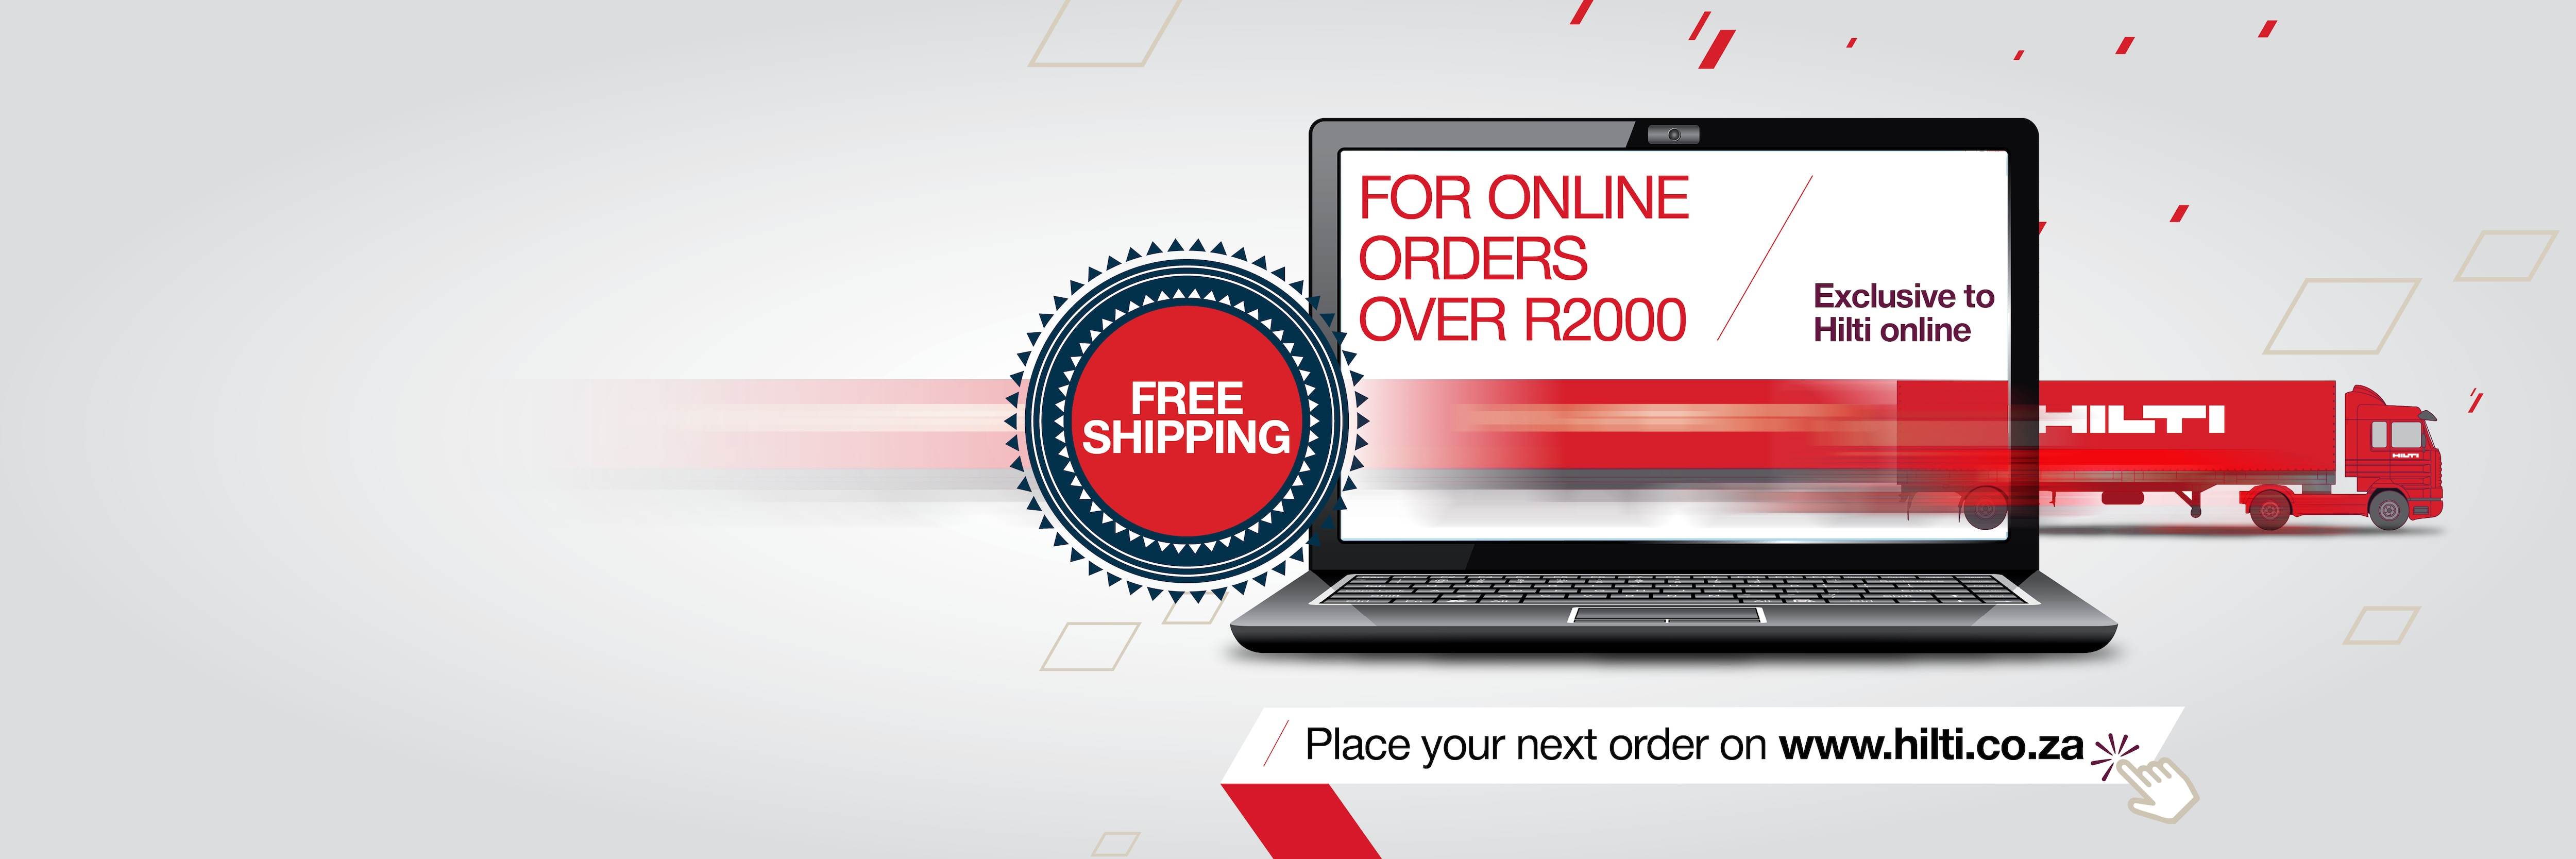 Free Shipping on Hilti Online